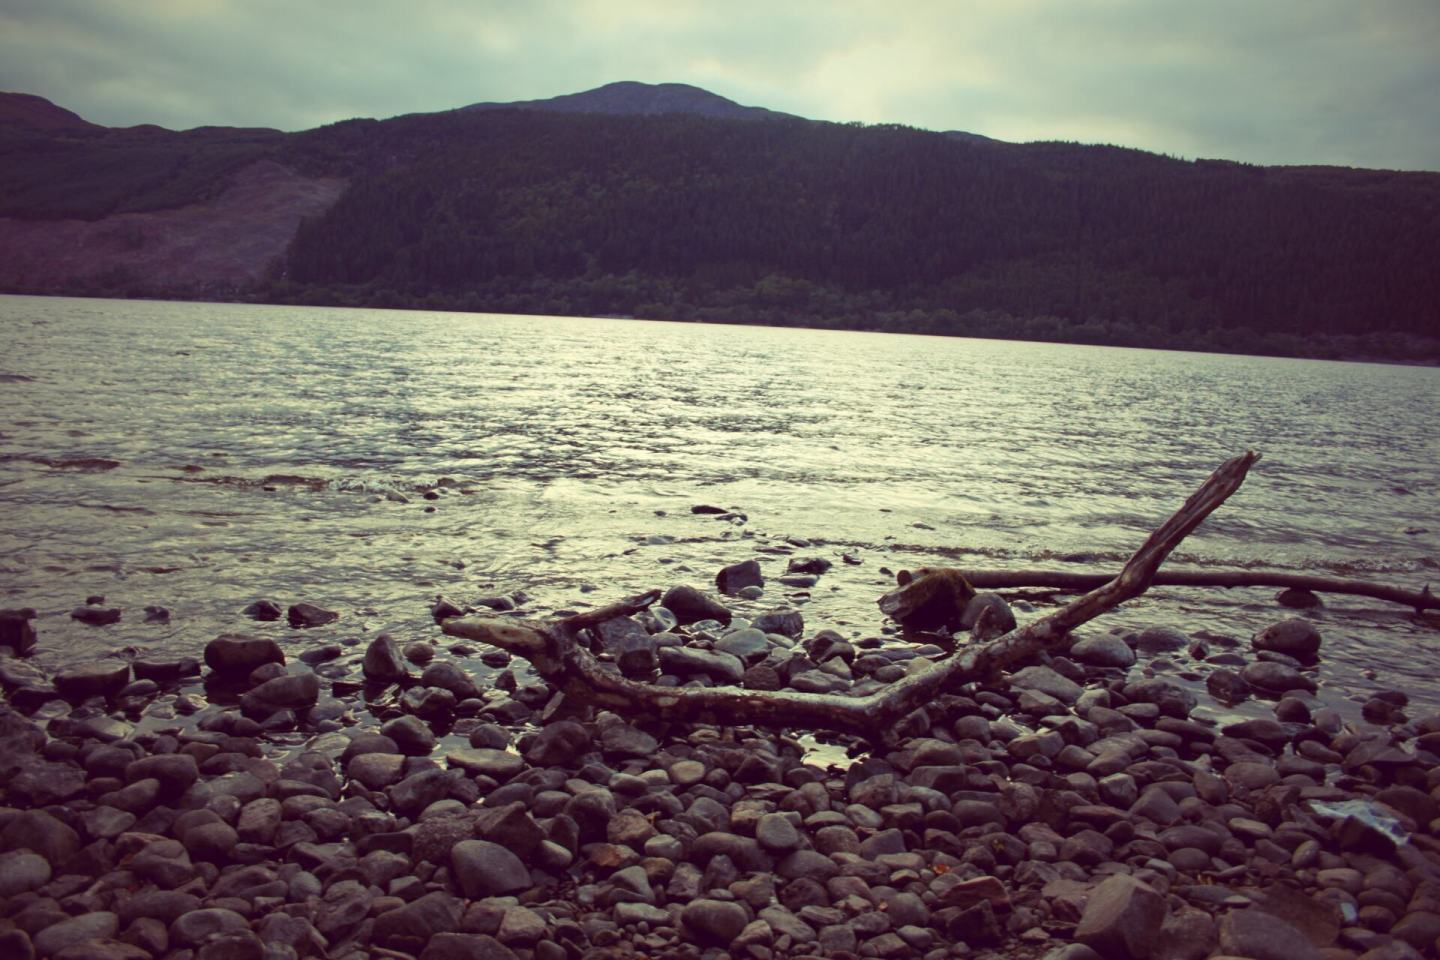 Lake monsters on the Loch Ness